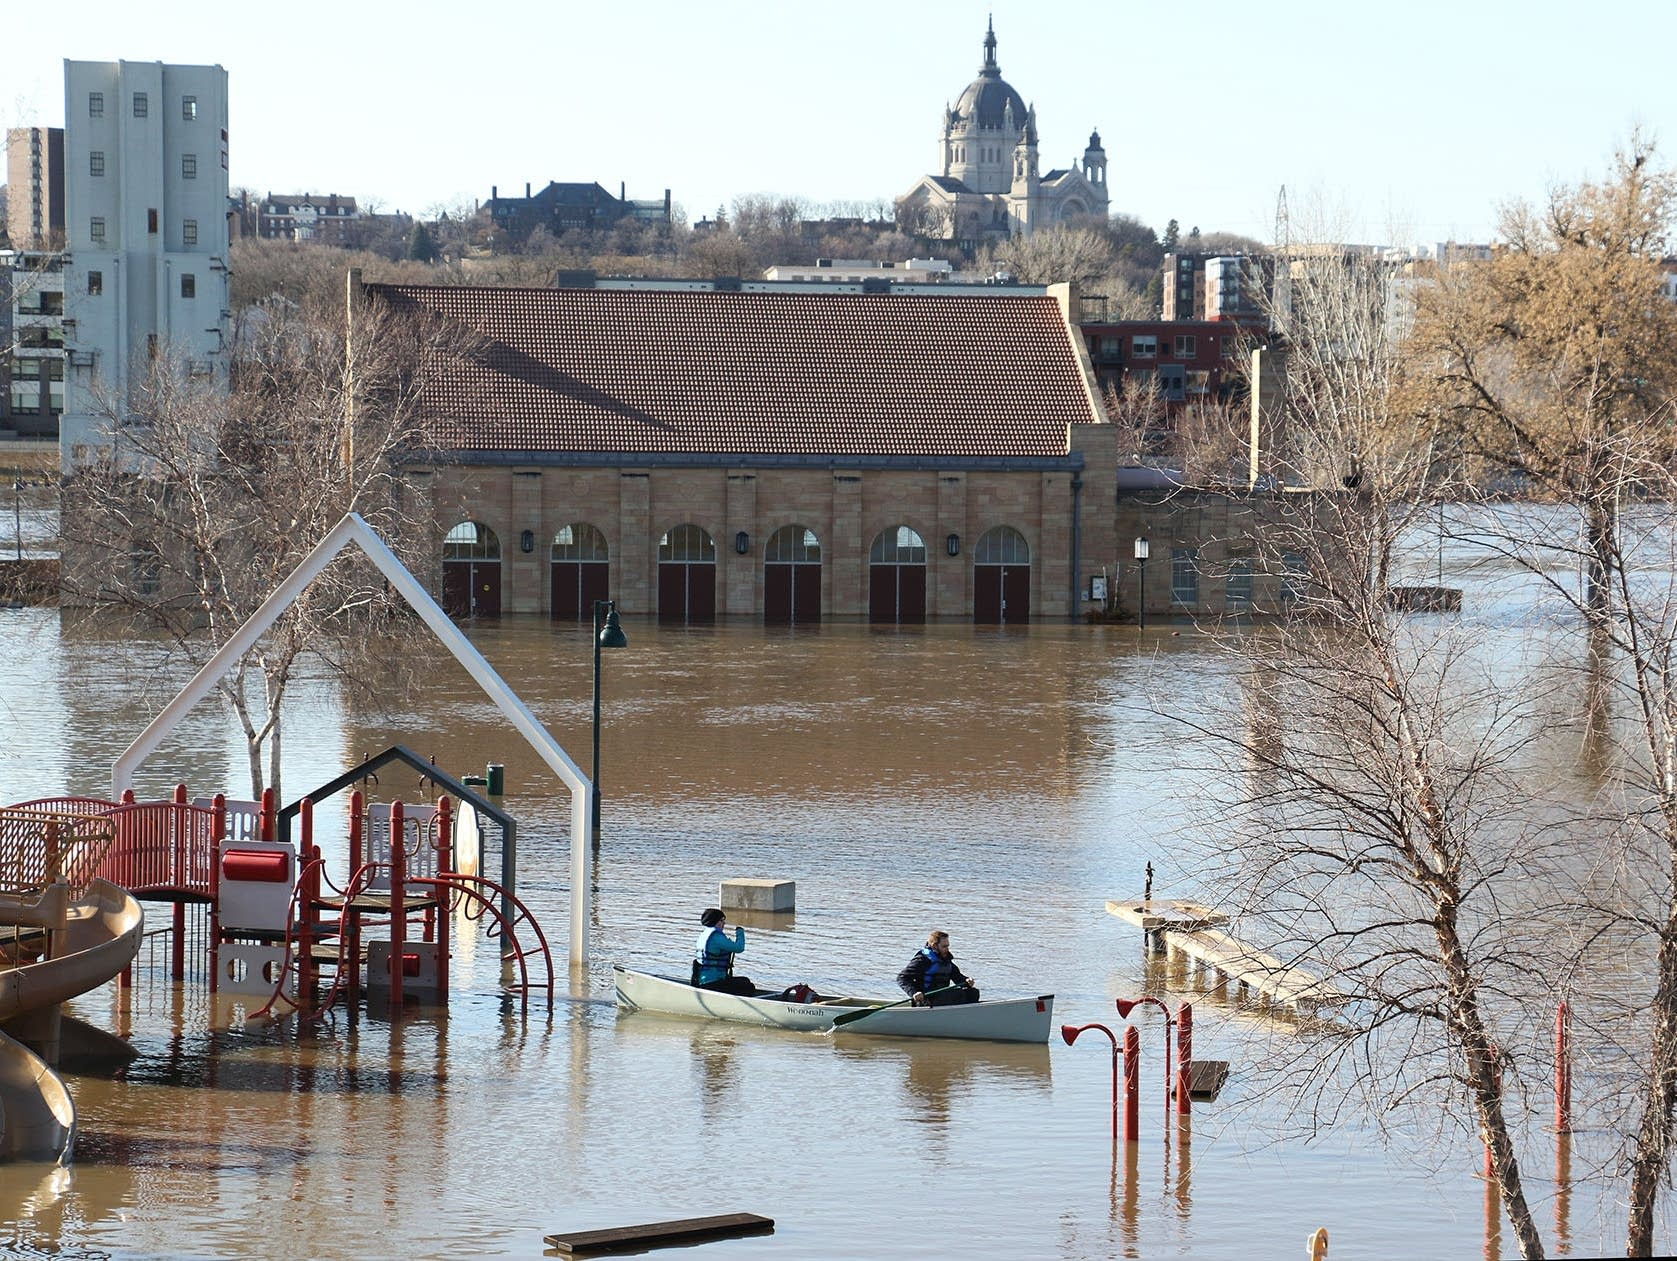 Canoeists paddle through a flooded playground at Harriet Island